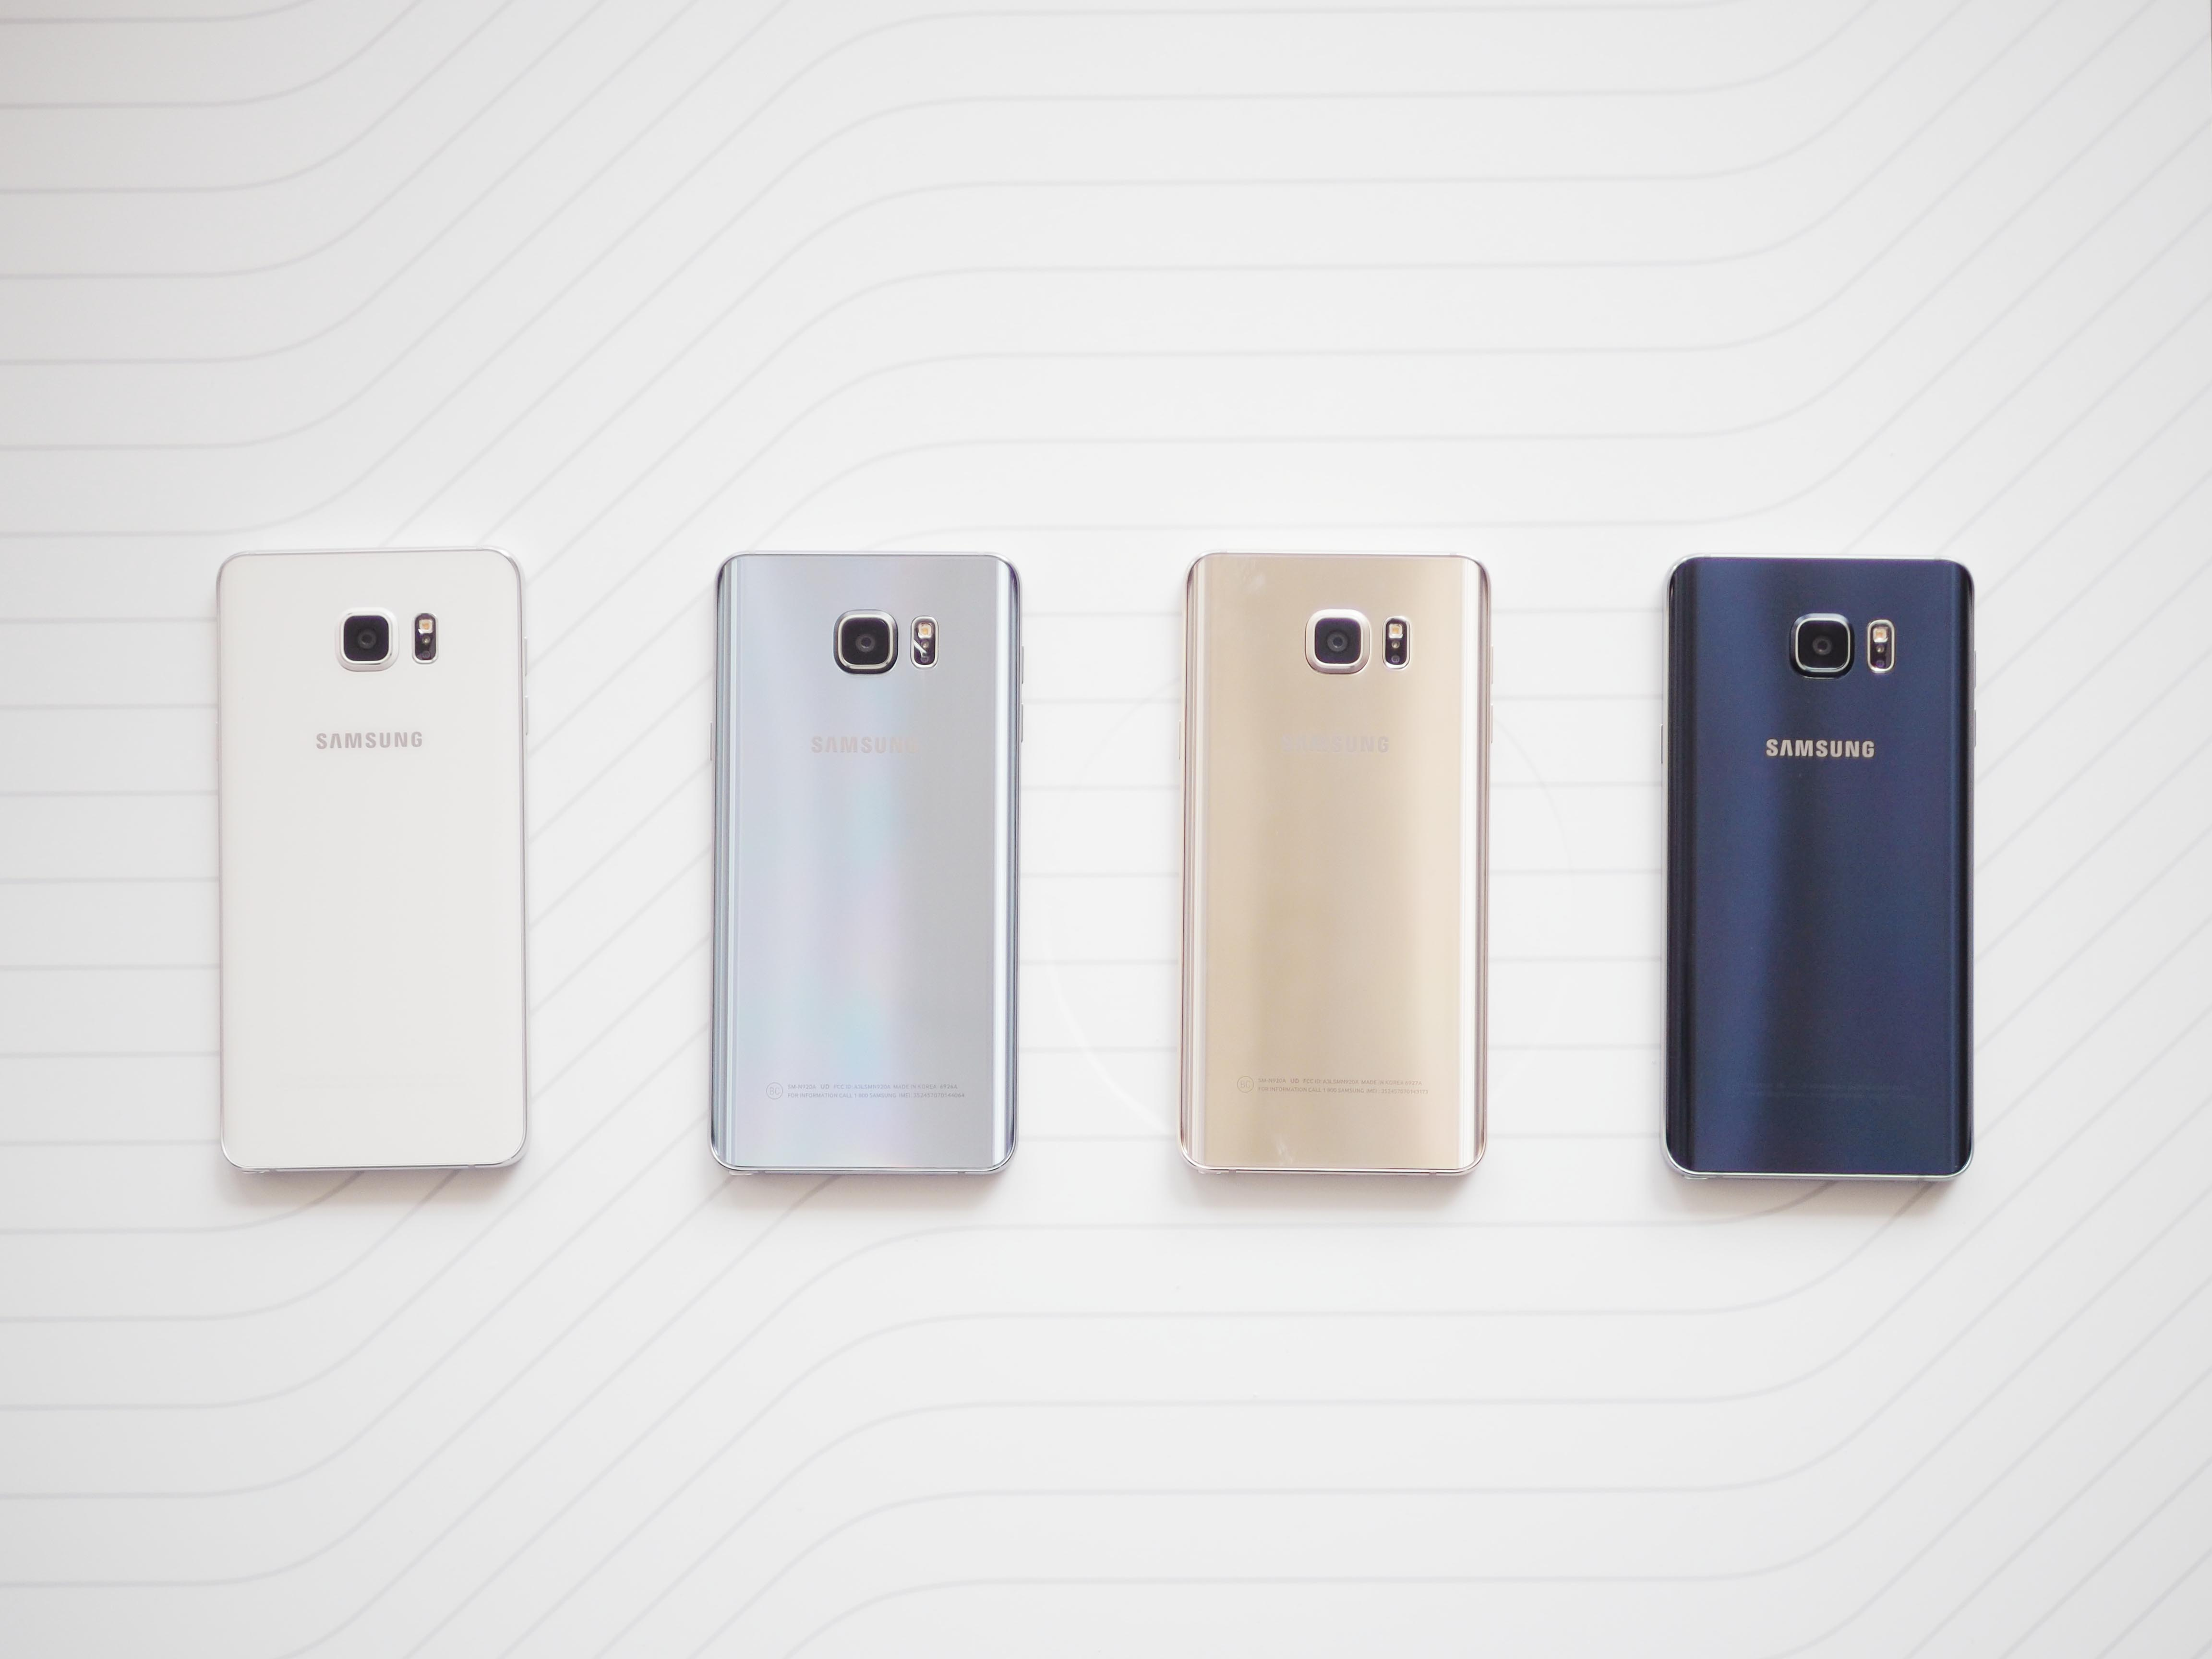 5 Cool Features Of Samsung Galaxy Note 5